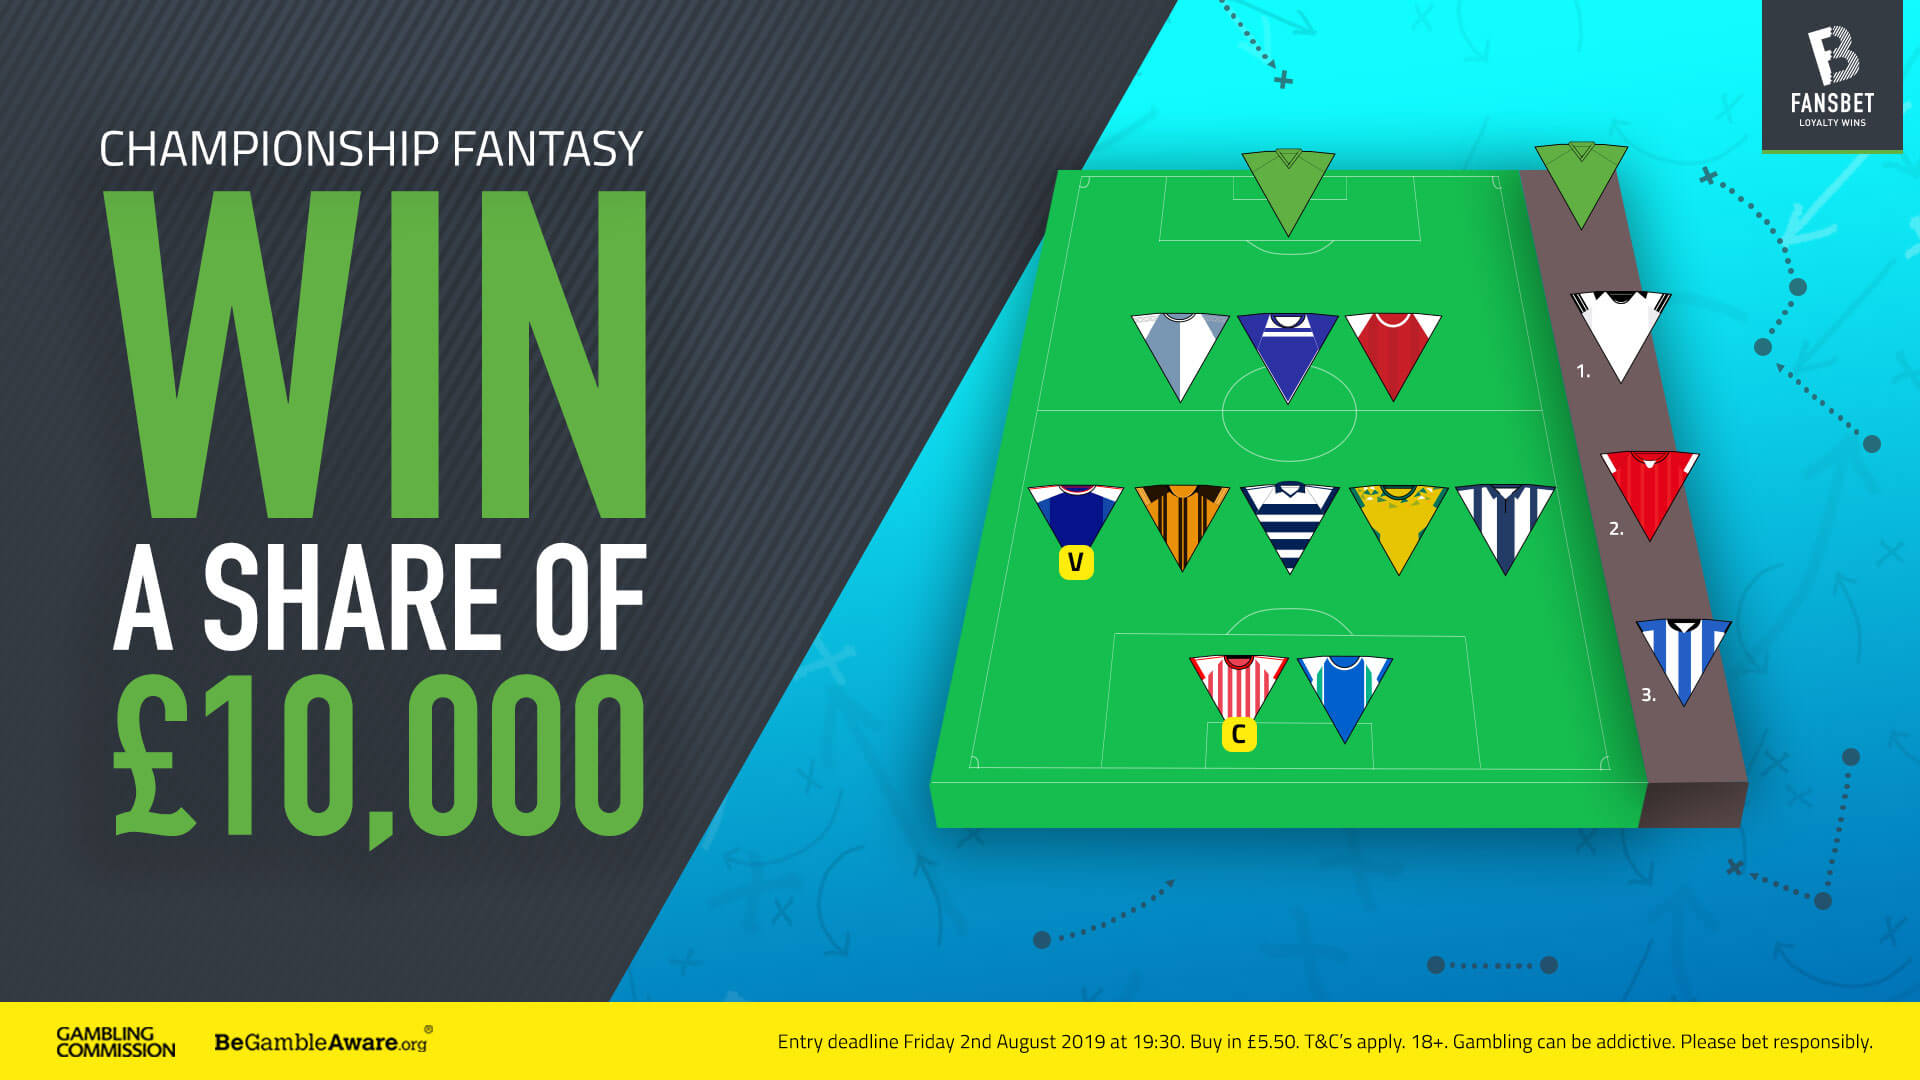 Championship Fantasy has arrived. Here's how to win it.